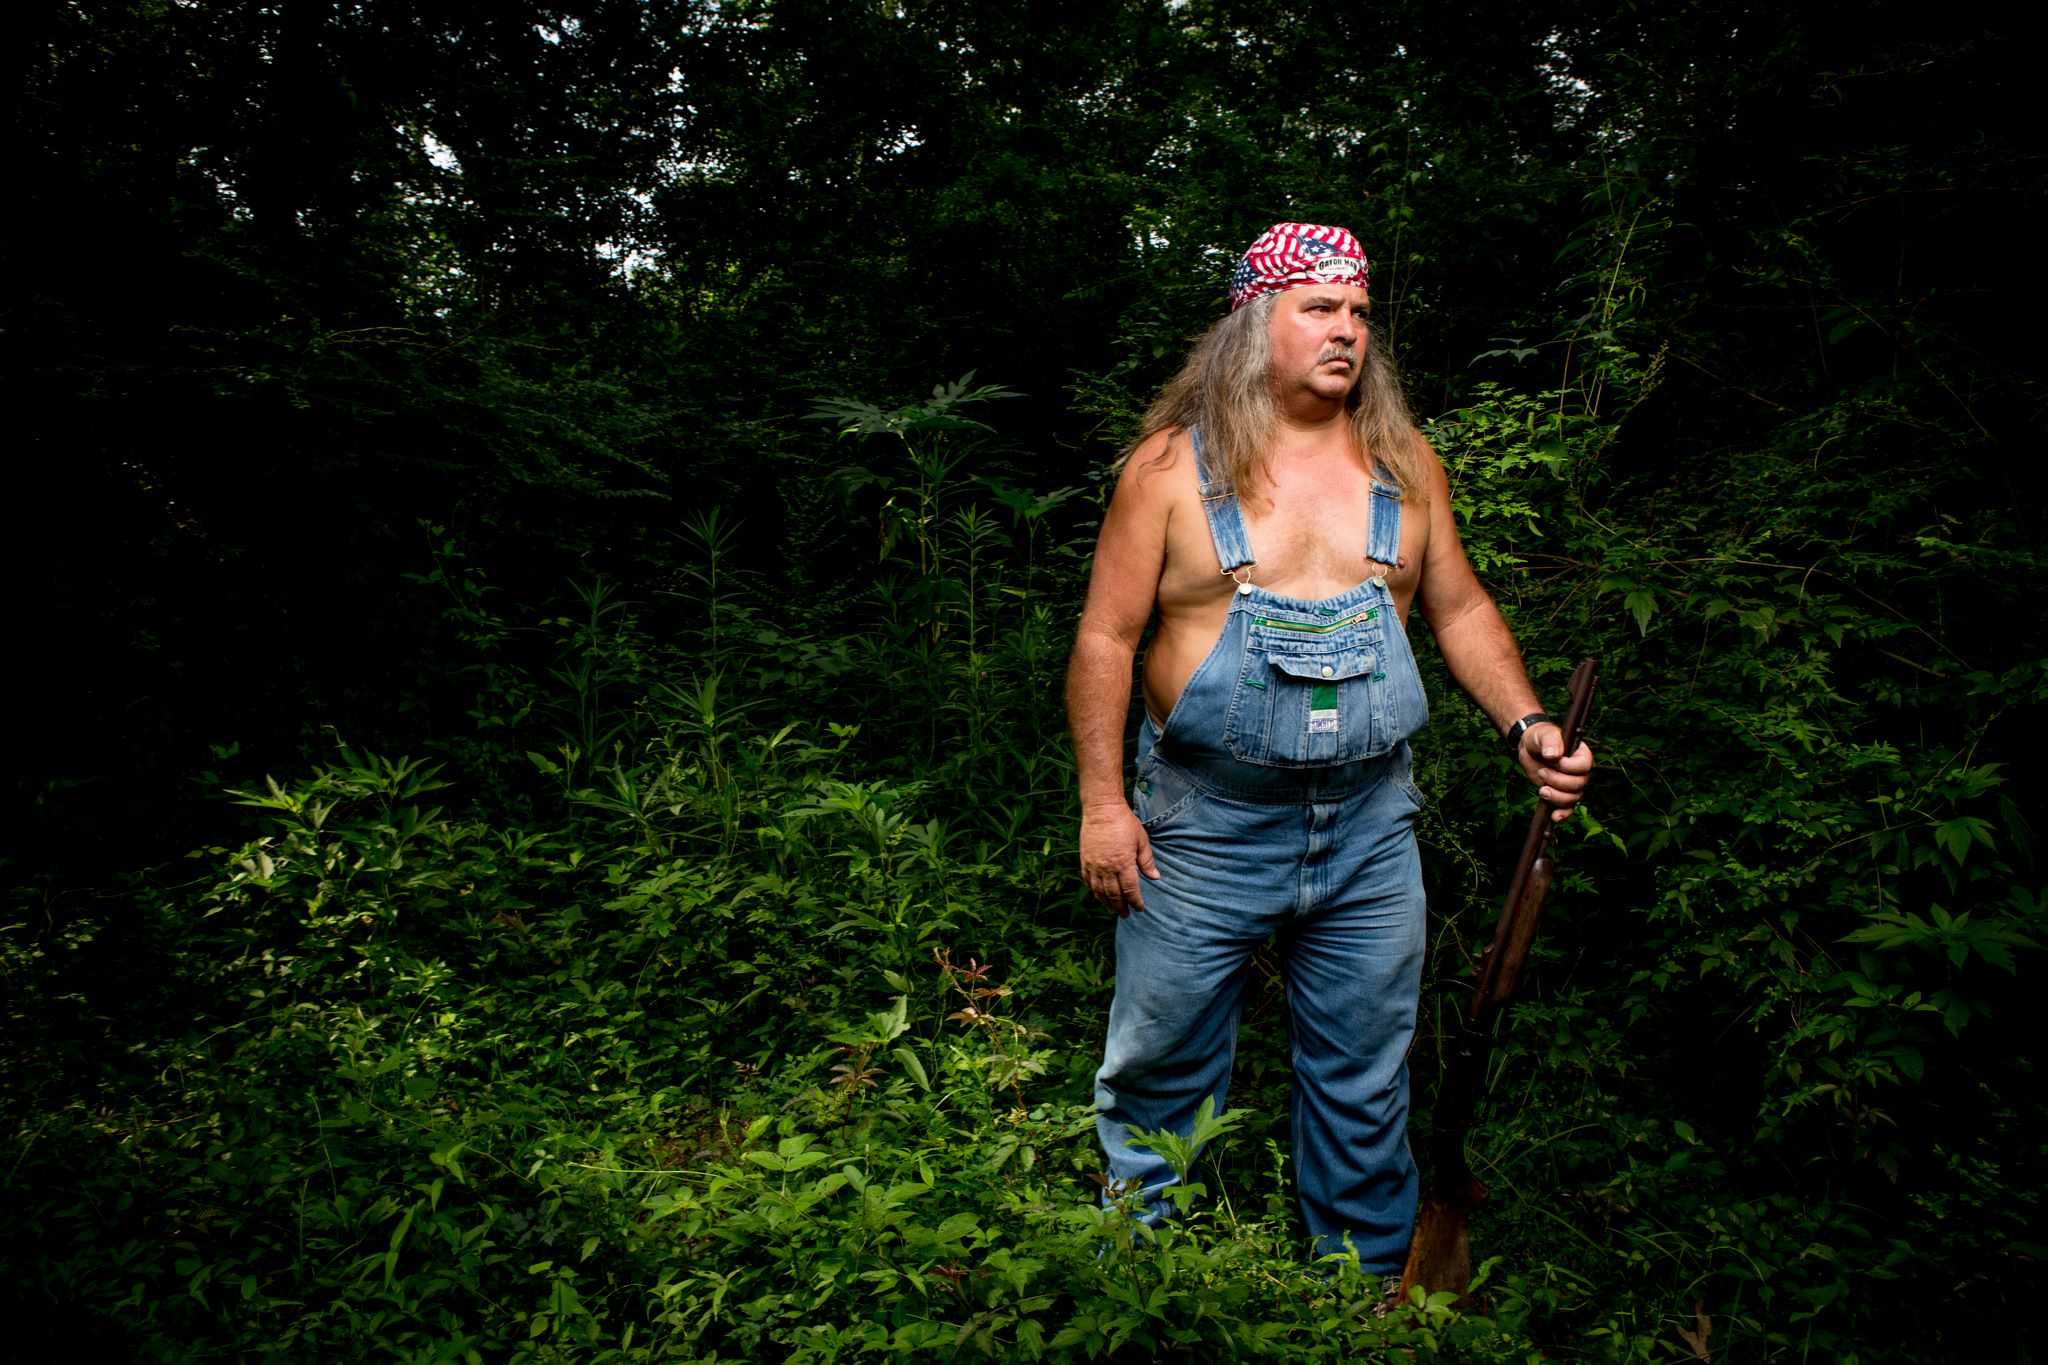 What happened to Bruce Mitchell from Swamp People? Where is he now? 2020 updates